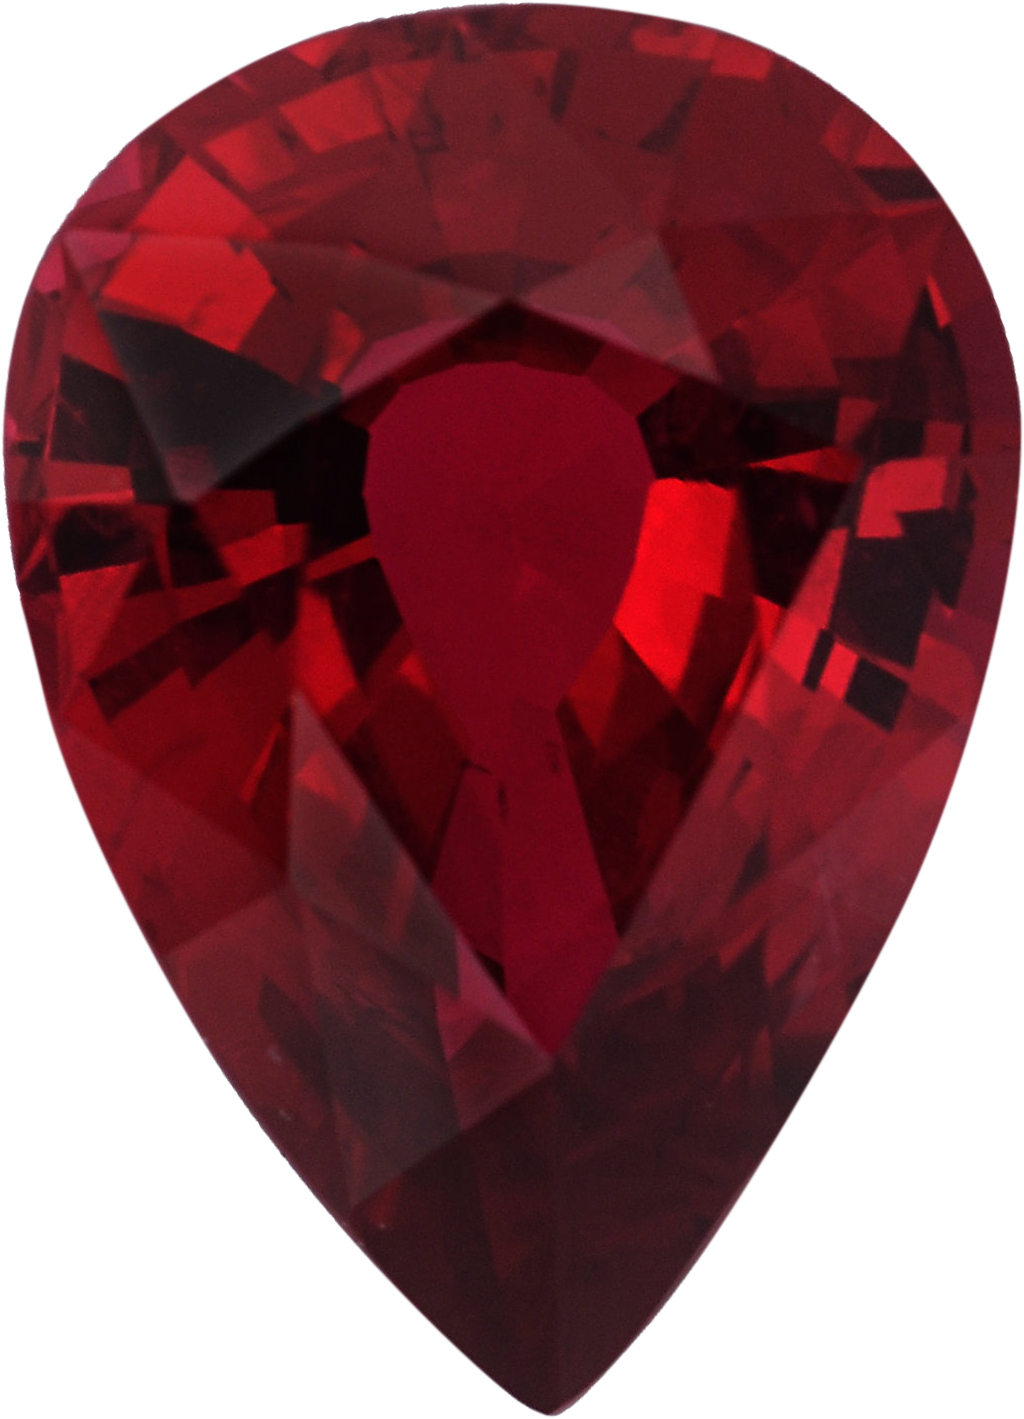 Super Pretty Loose Ruby Gem in Pear Shape, Red Color, 6.98 x 5.07 mm, 0.78 carats